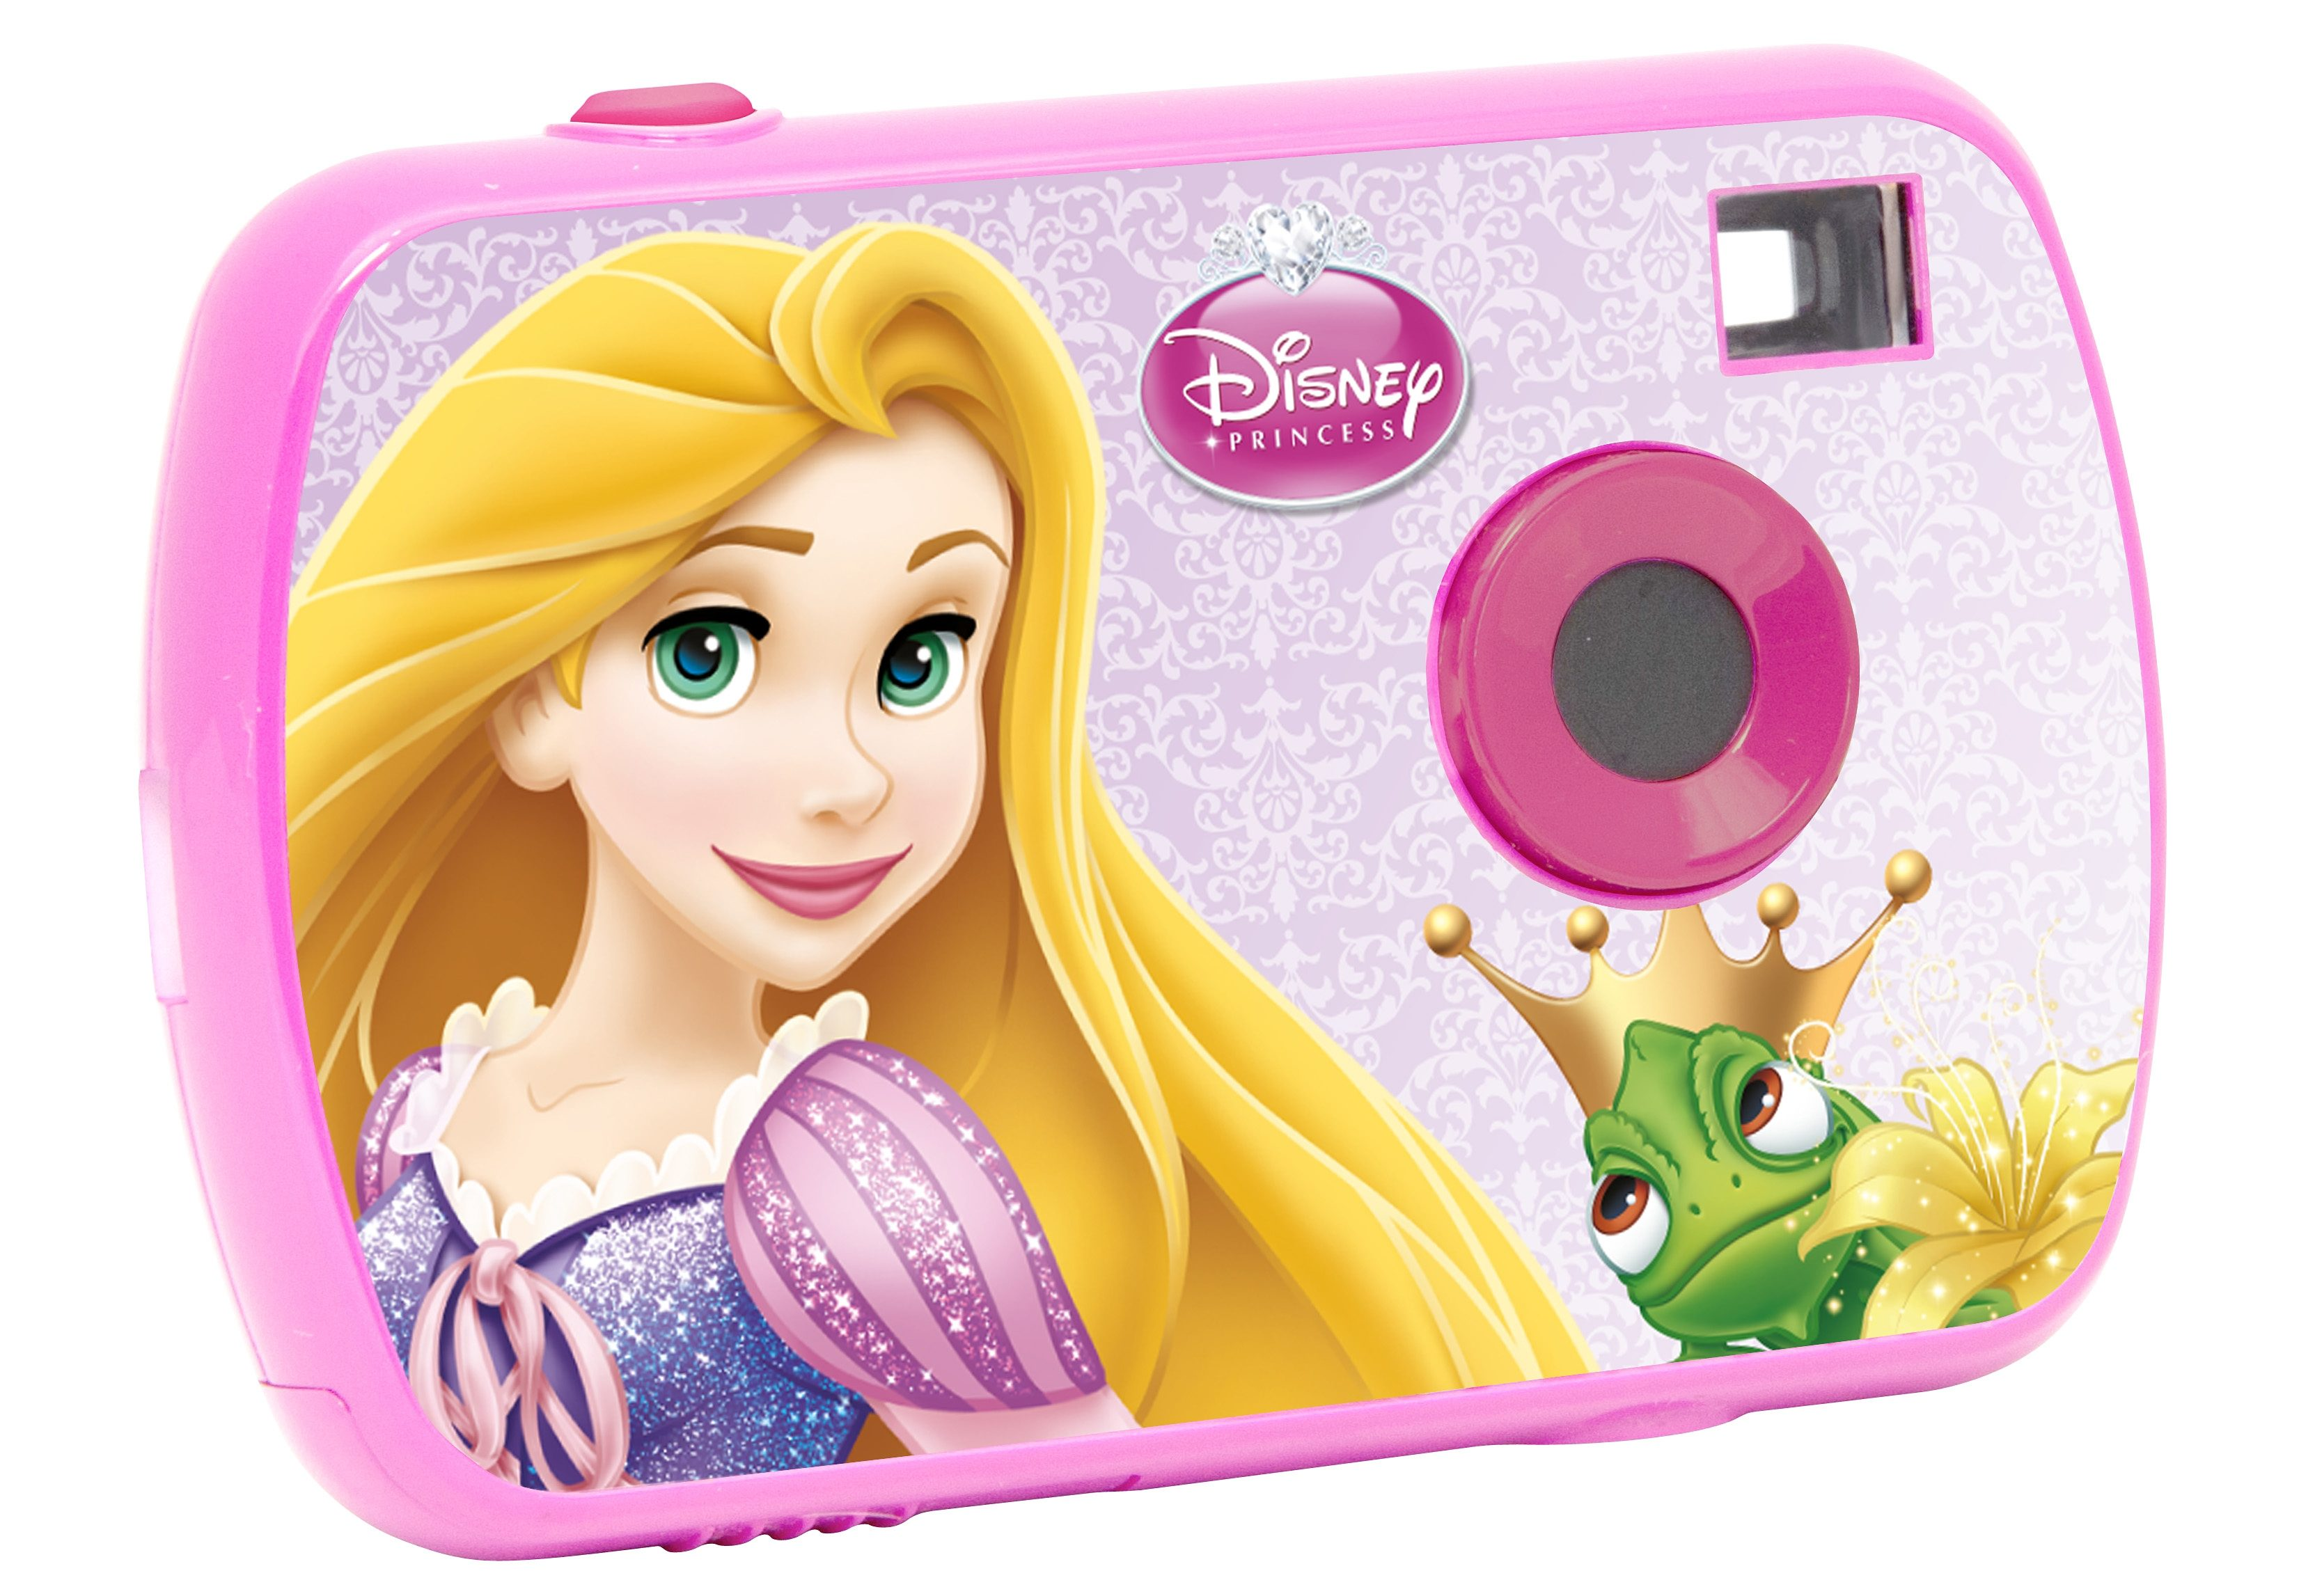 Lexibook Digitalcamera, »Disney Princess«